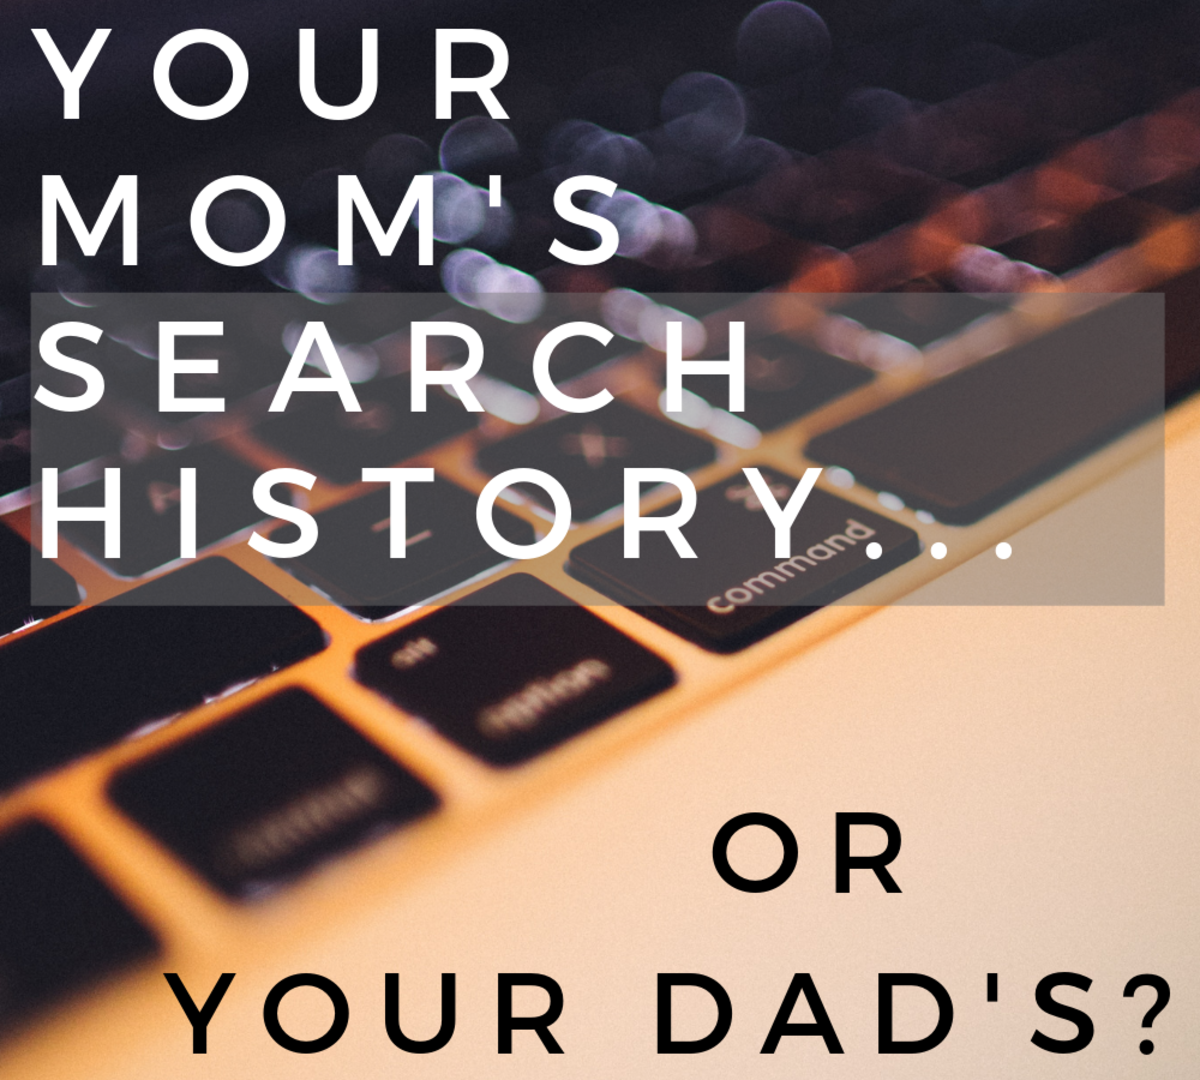 Would you rather look at your mom's search history or your dad's?